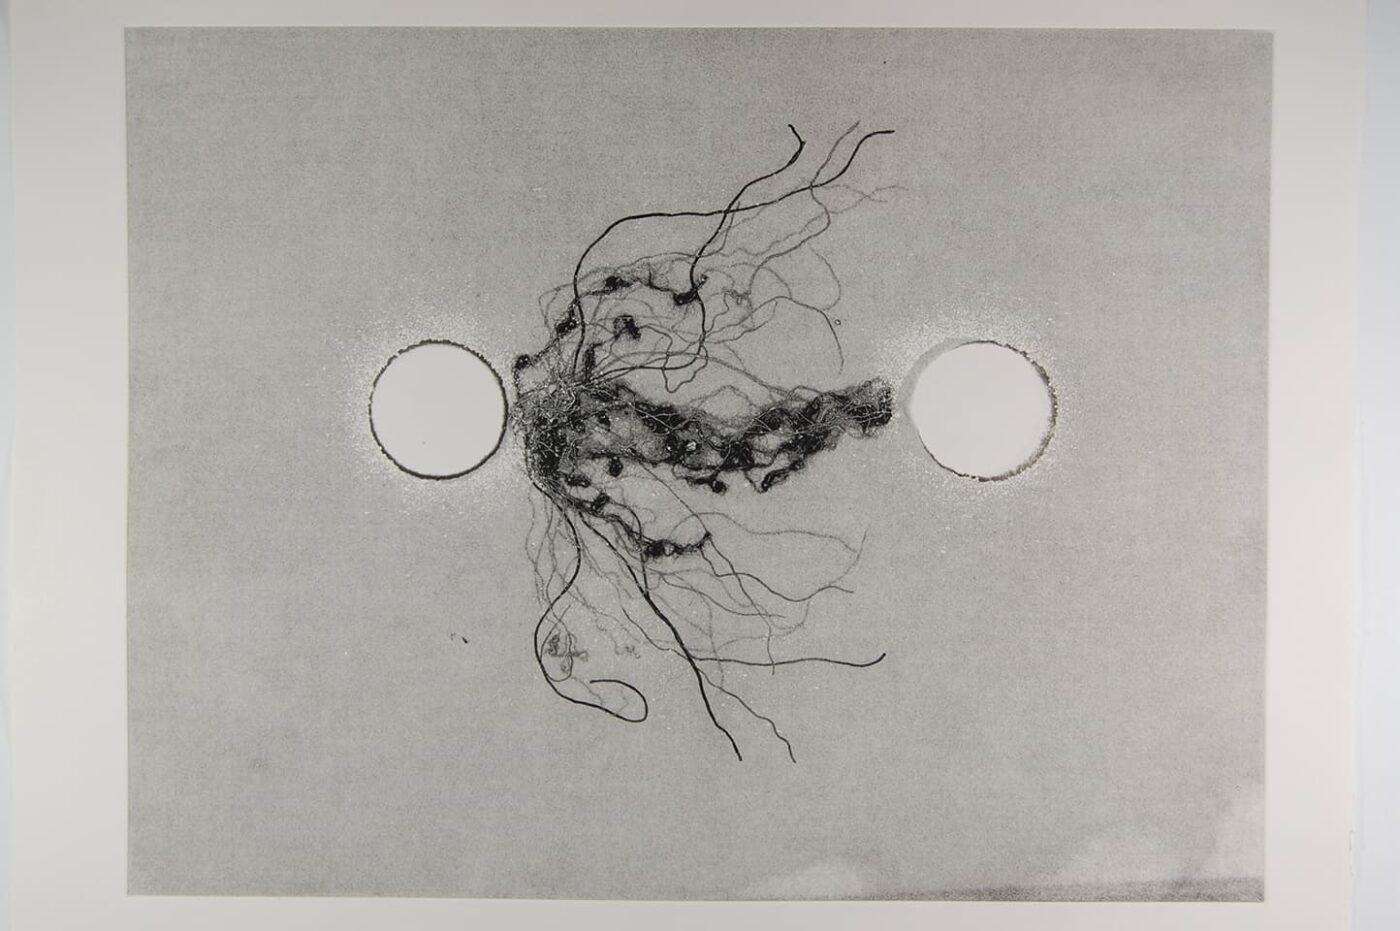 <strong>Out of Body 4.3</strong>, Susan Aldworth, monoprint, 56 x 76 cms, 2009.